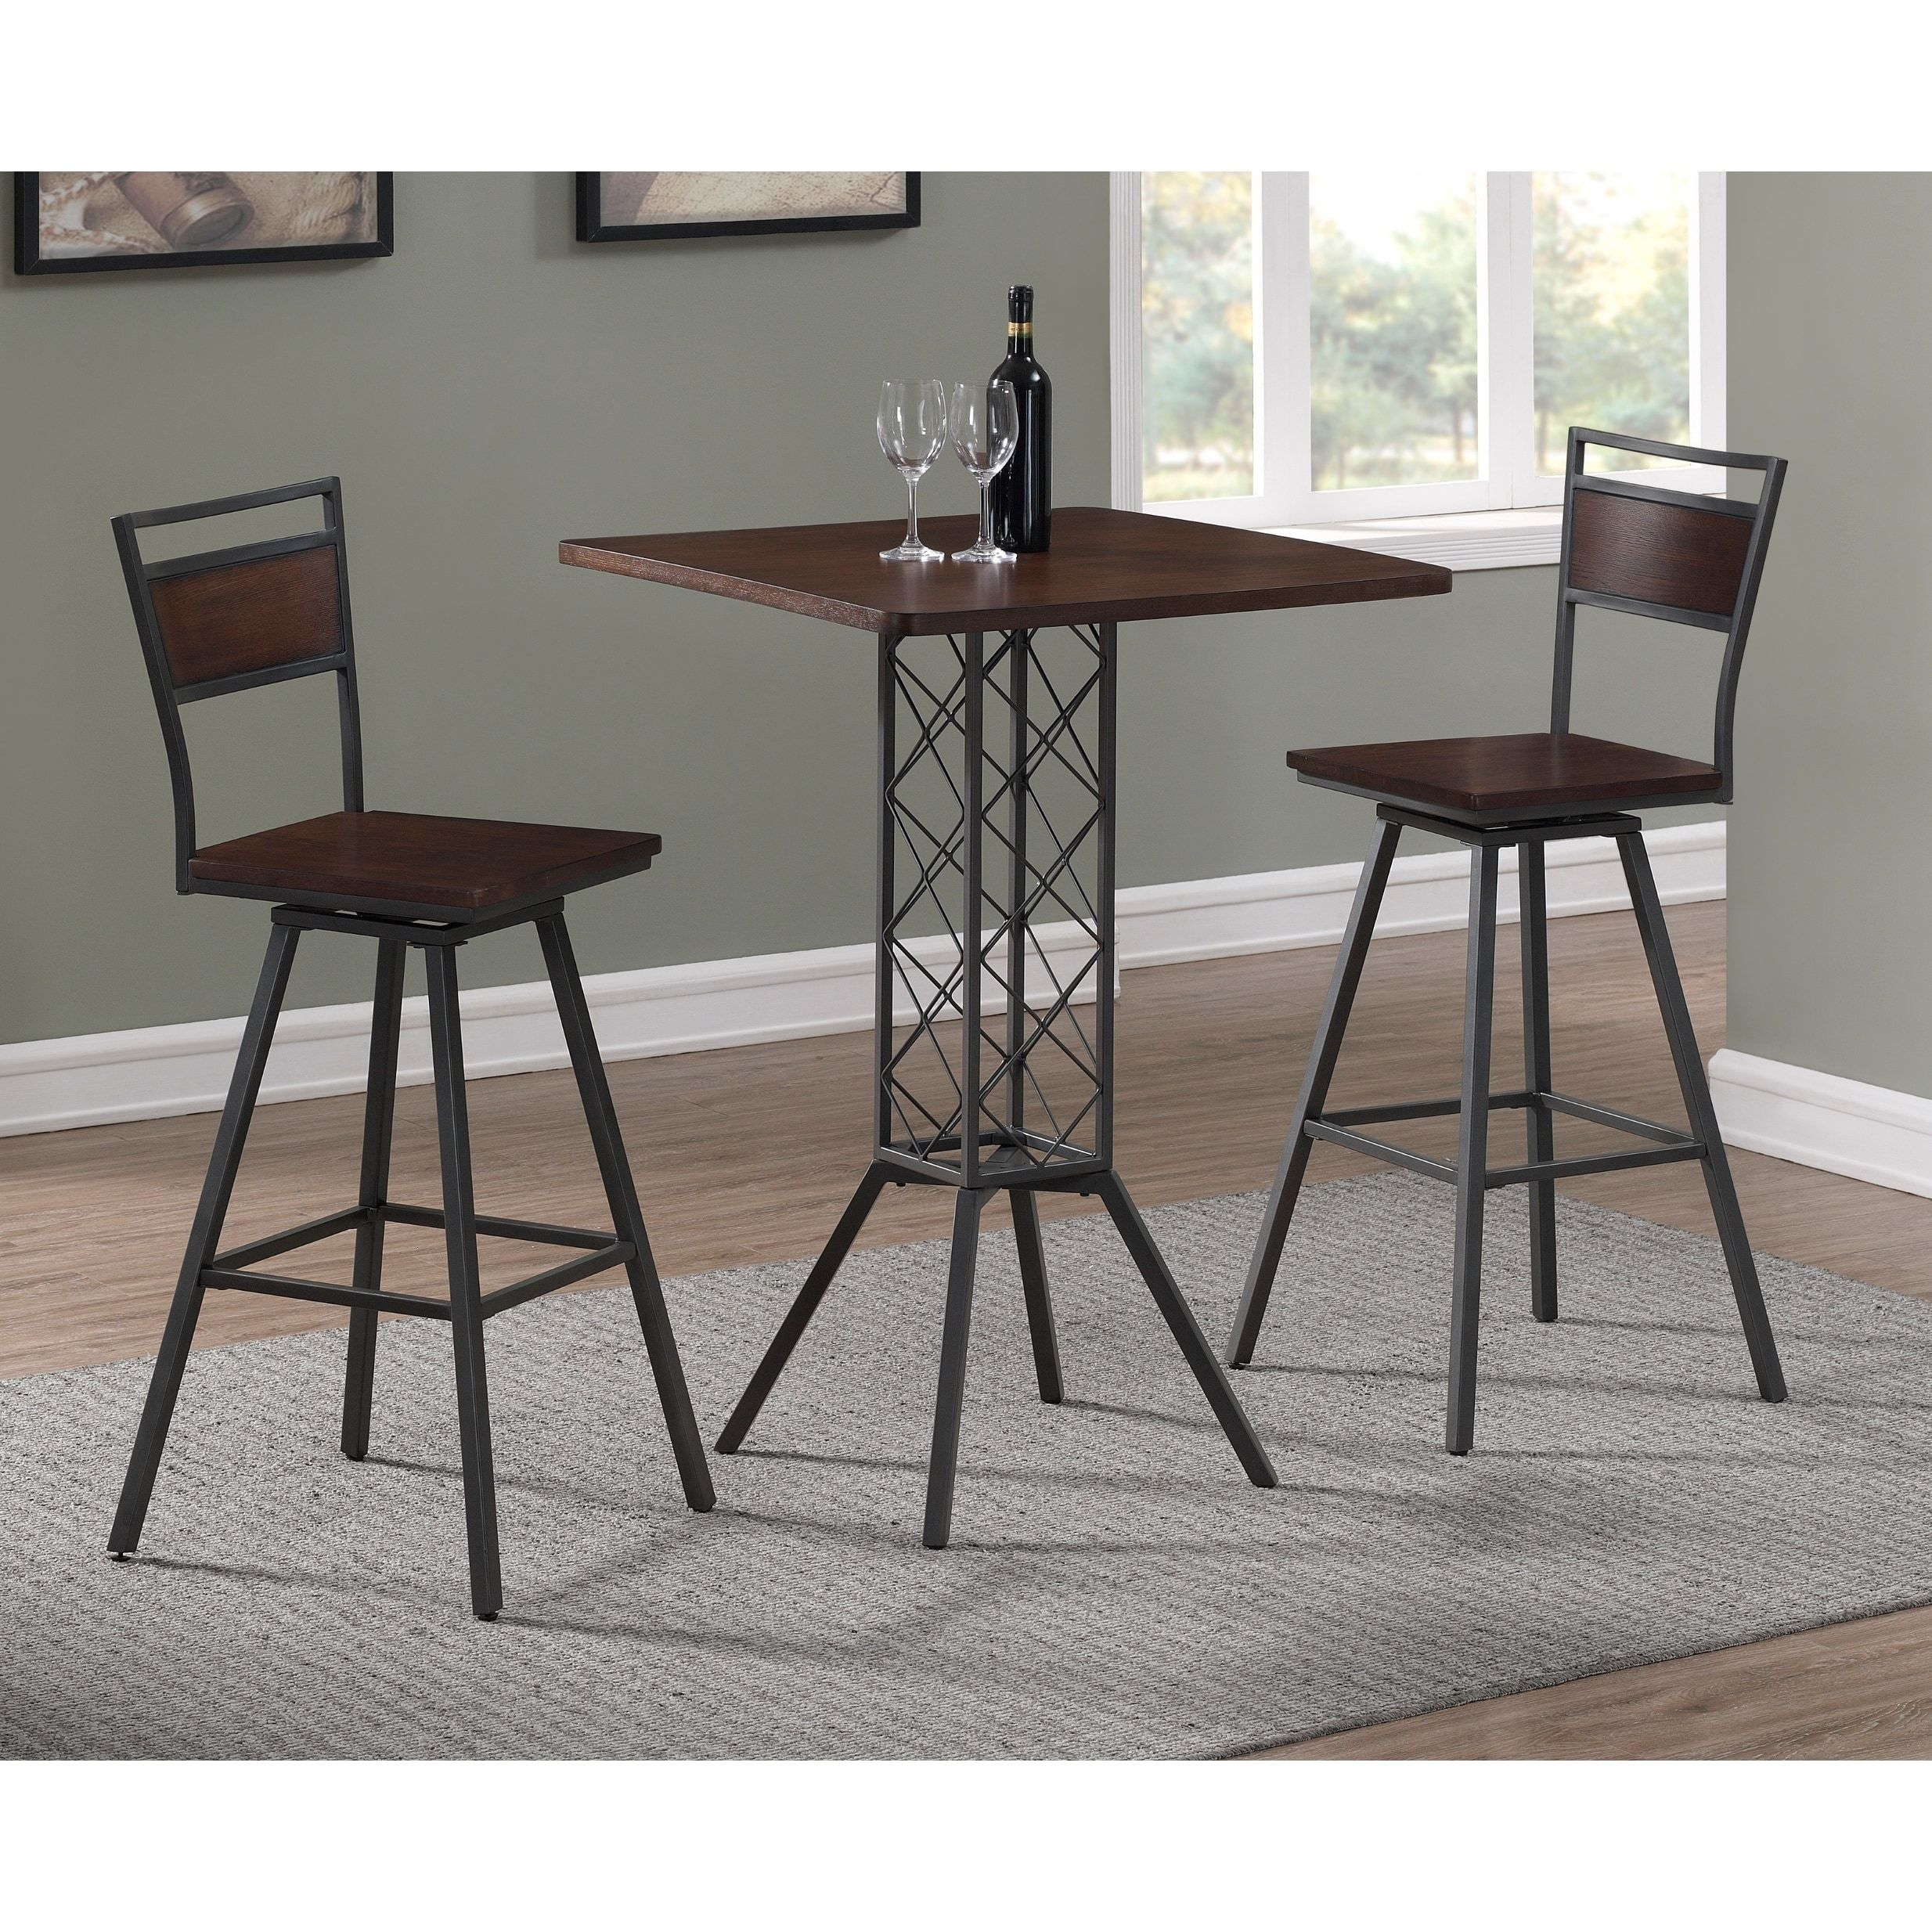 Truro 36Inch Counter Height Dining Setgreyson Living 5Piece Magnificent 36 Dining Room Table Design Decoration